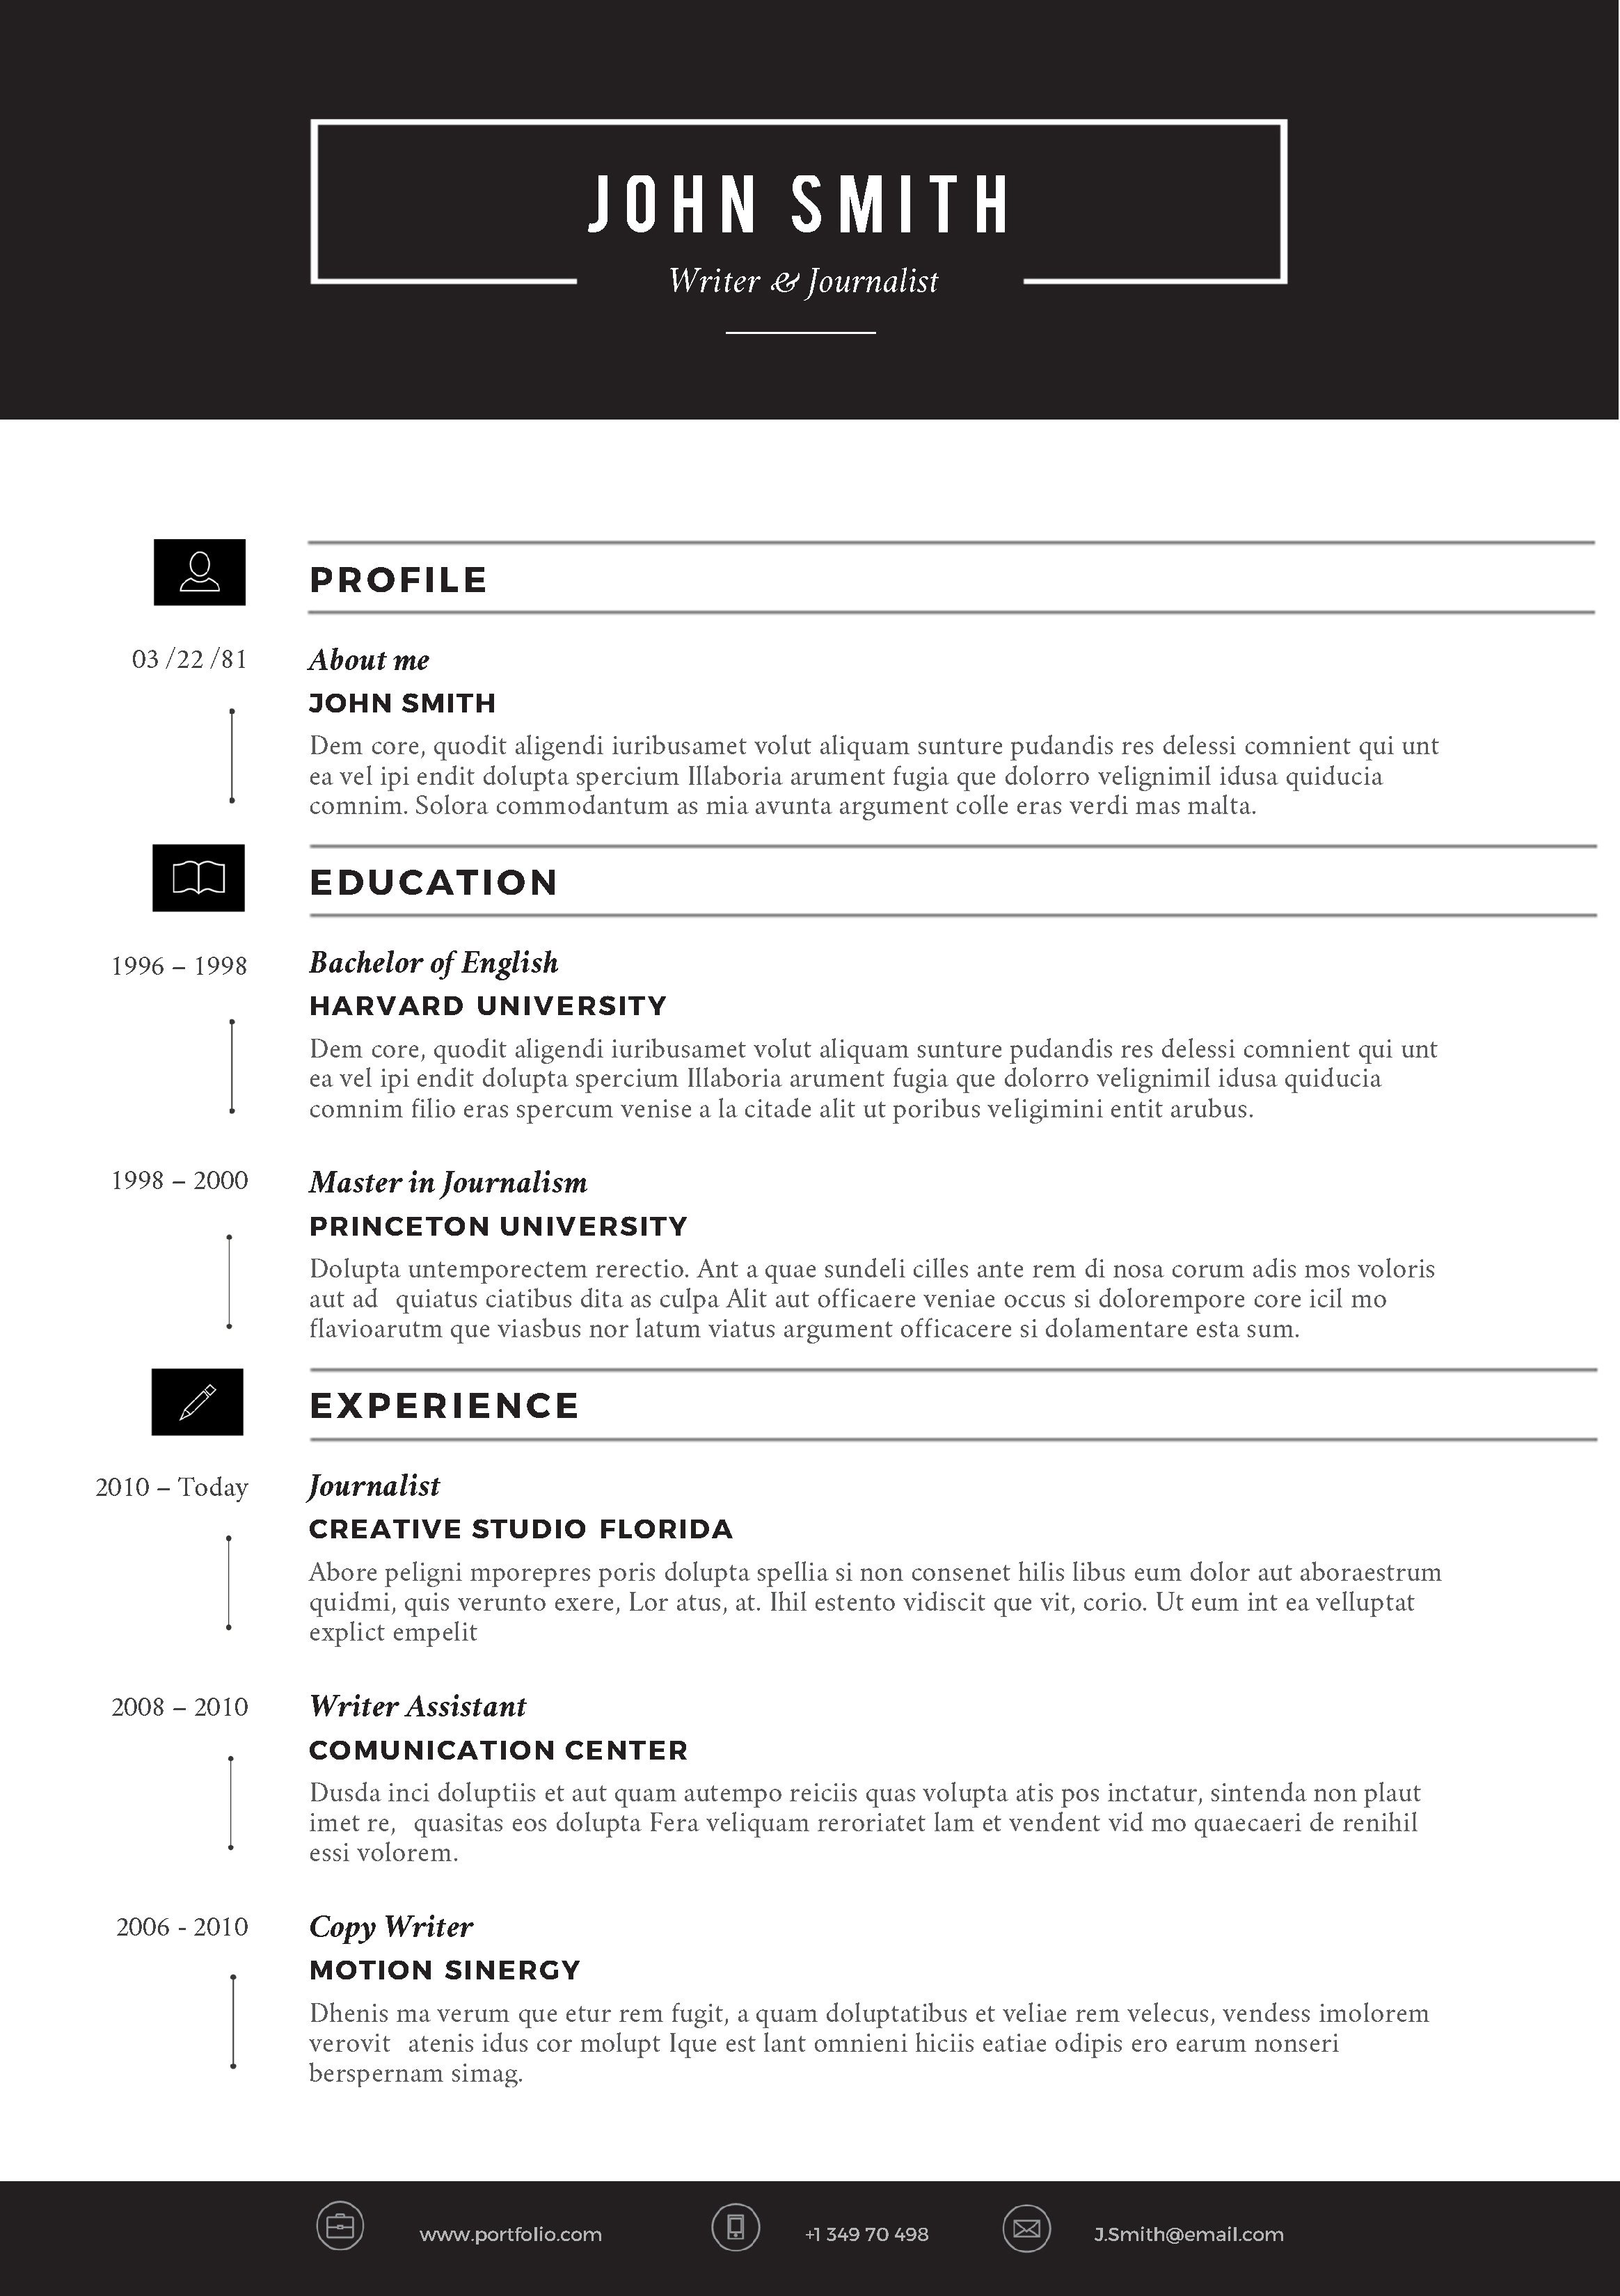 Resume Template Microsoft Word Cvfolio Best 10 Resume Templates for Microsoft Word